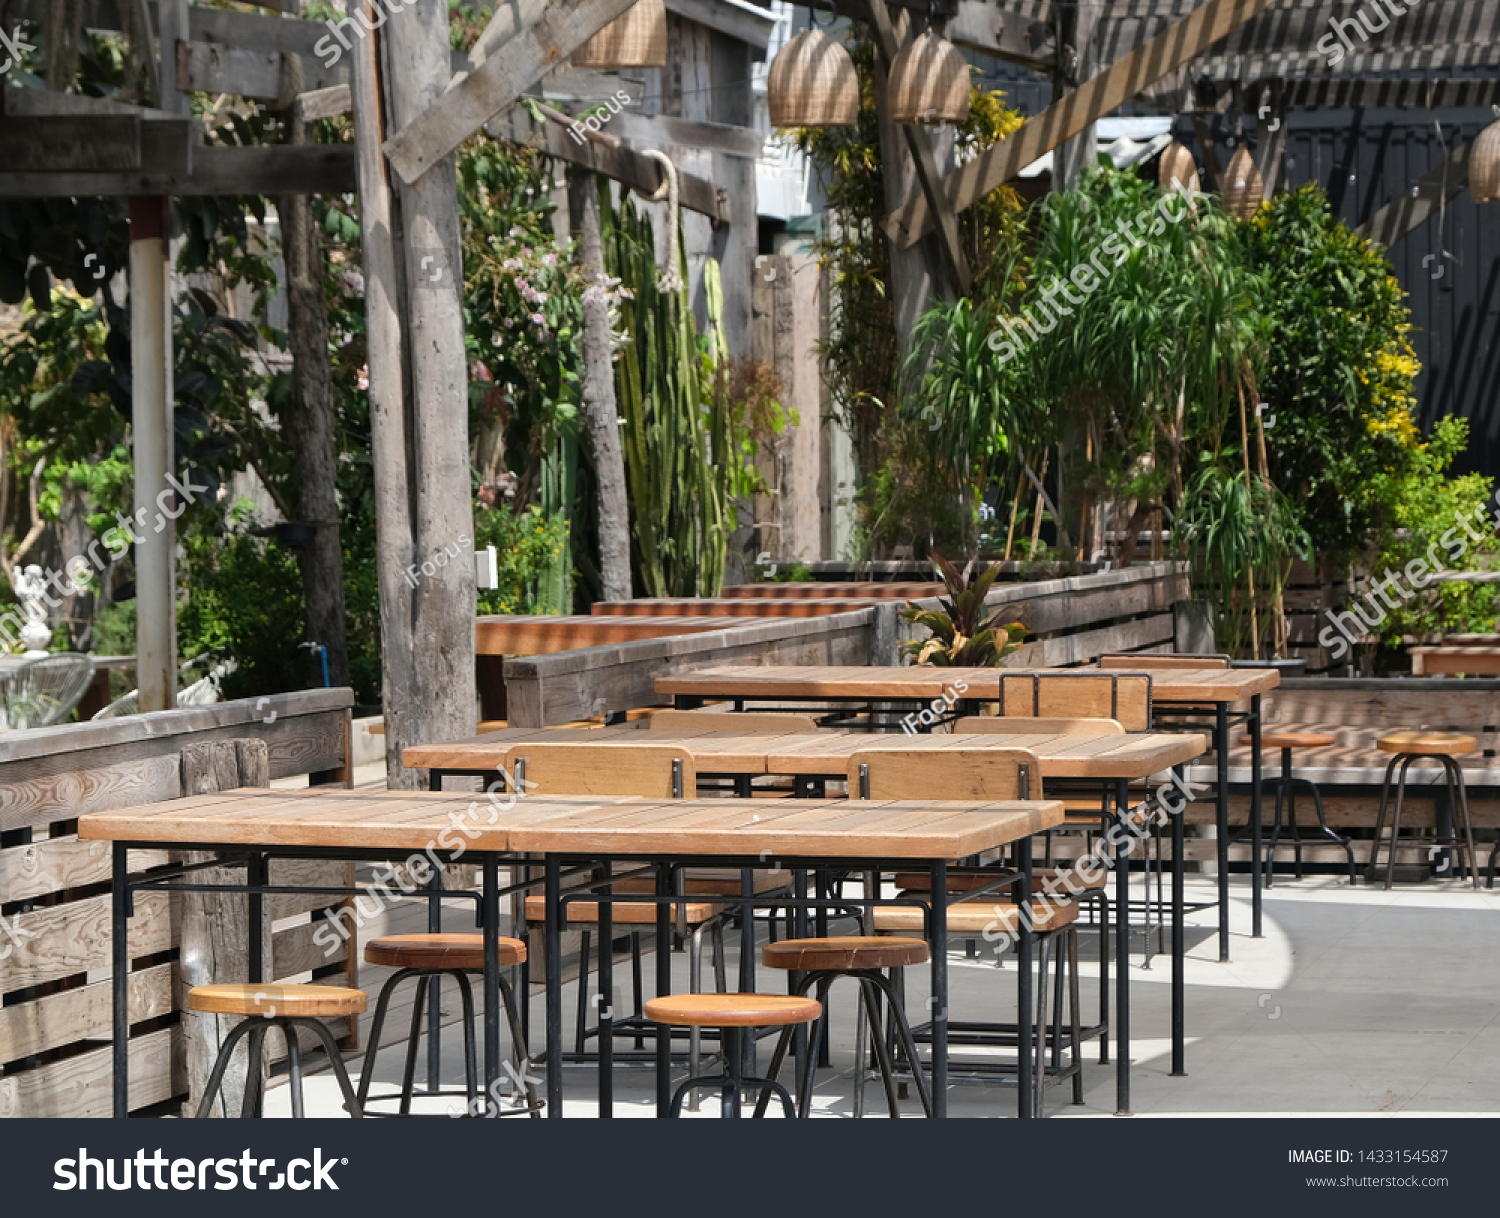 Outdoor setting for food and beverage outlet with blurry vegetation as background